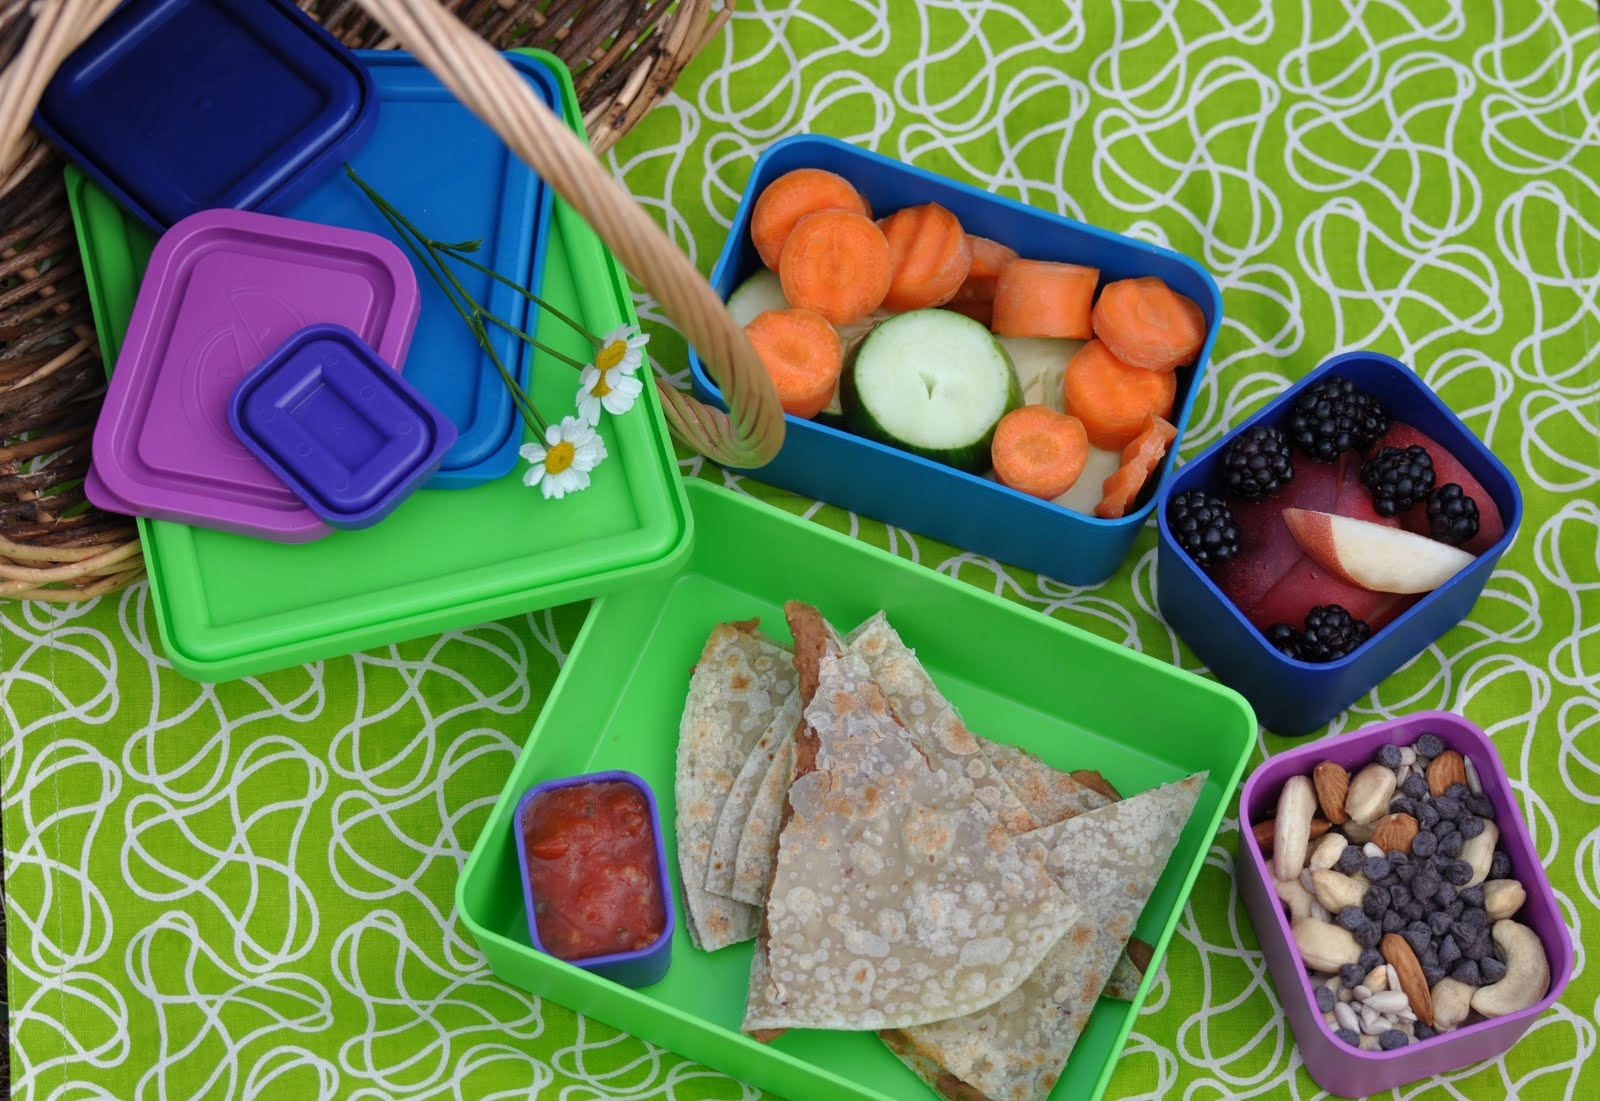 Nourishing meals ideas for packing a healthy school lunch ideas for packing a healthy school lunch forumfinder Images